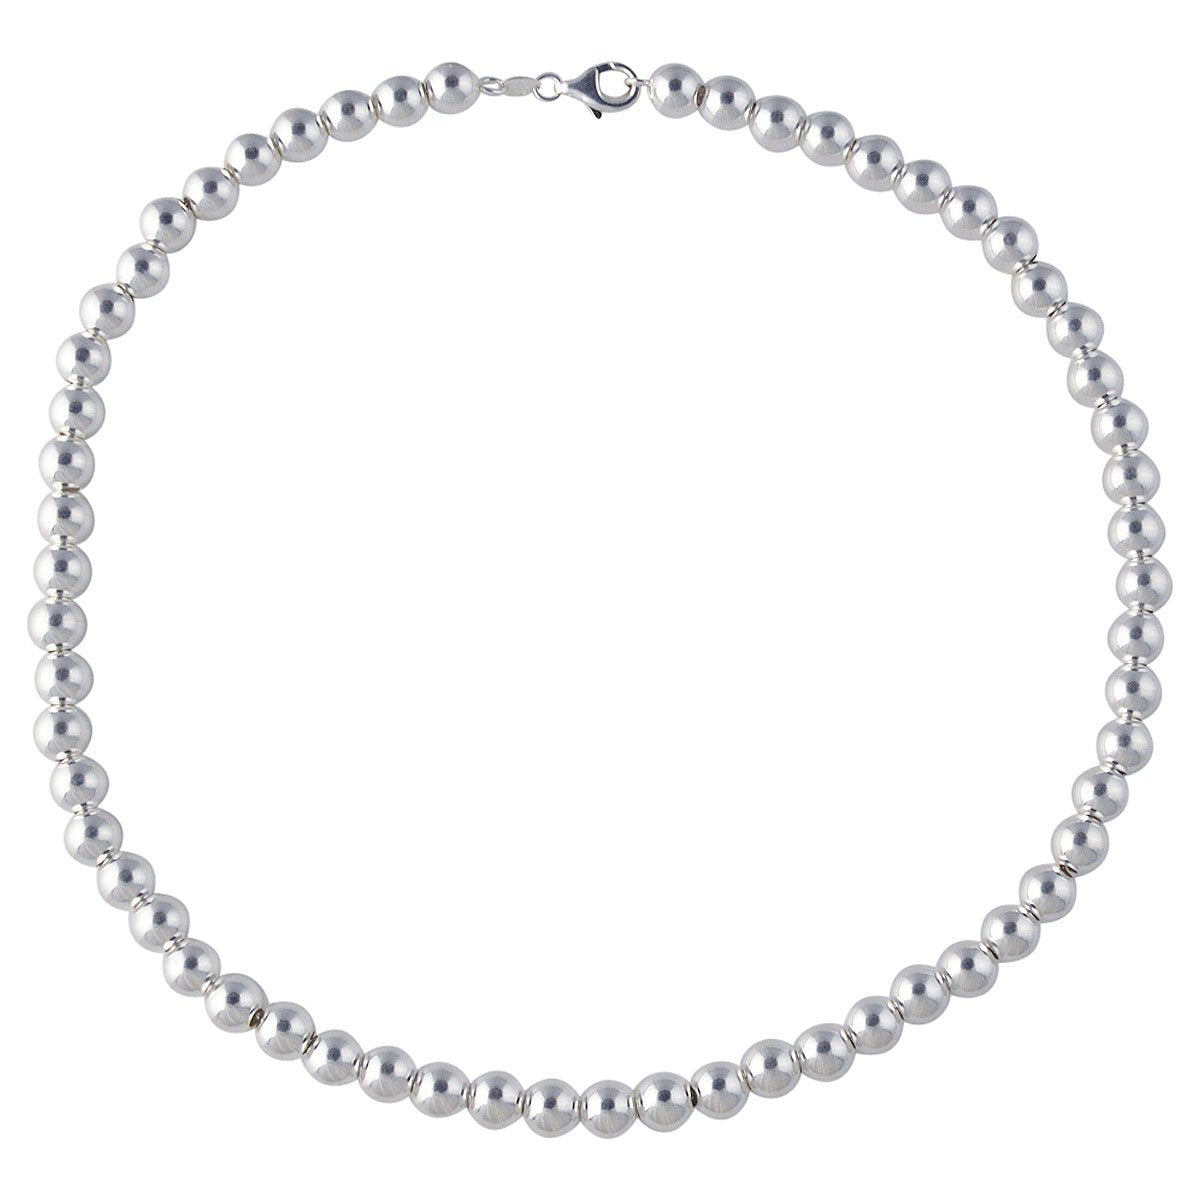 Sterling Silver Loose Hollow Bead Ball 8mm Necklace Chain Italian Italy